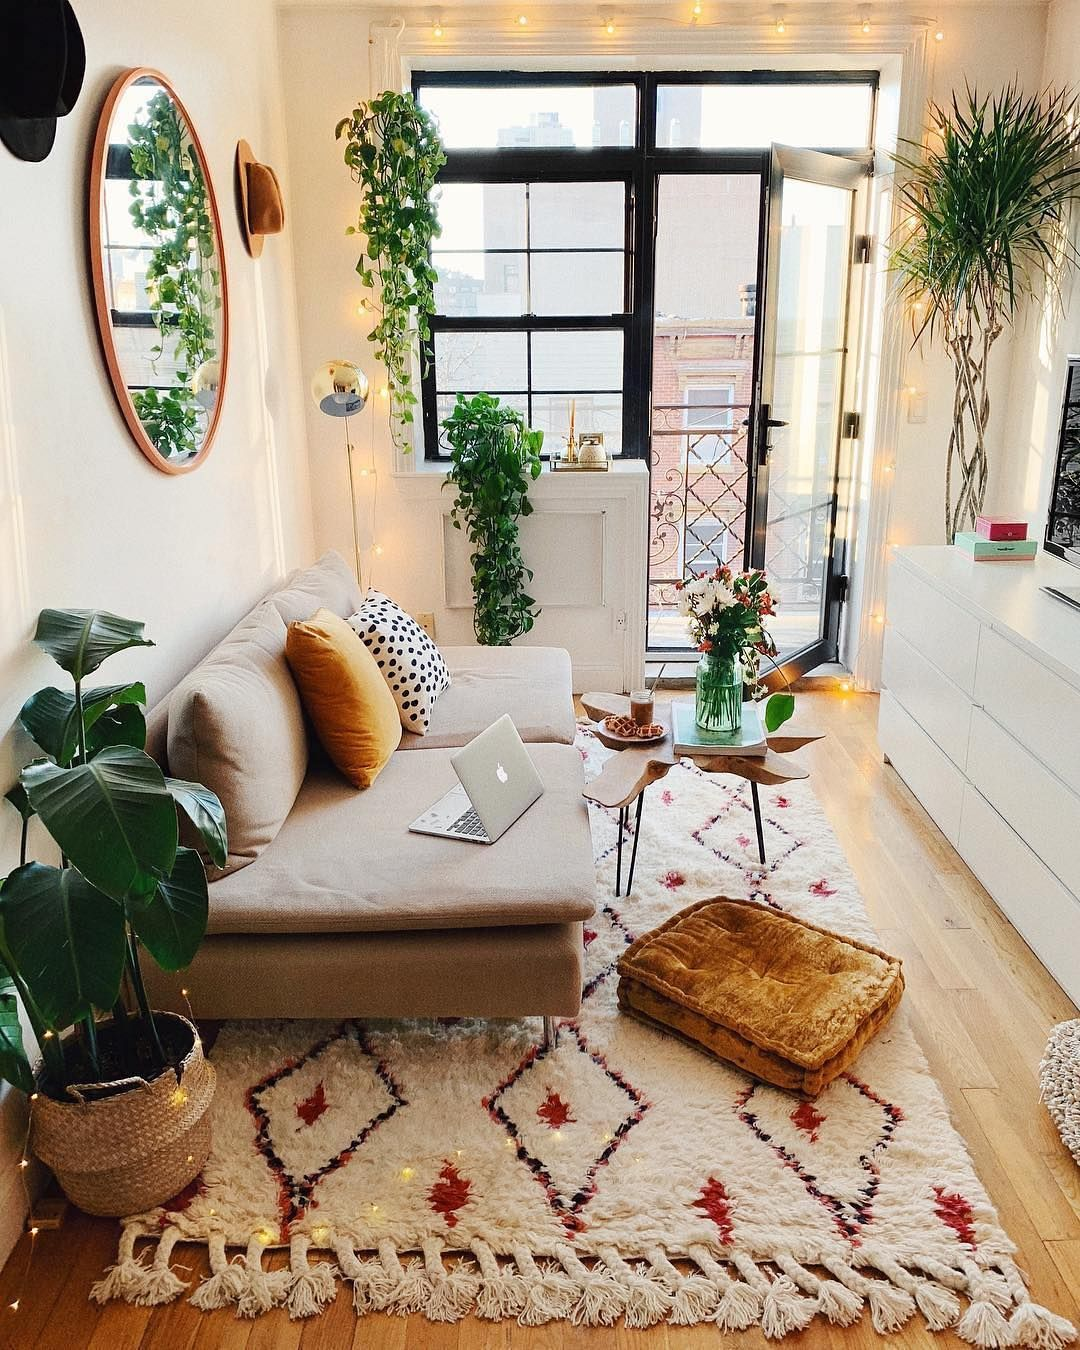 Super Cozy Scandi Inspired Living Room With Bright Textiles Velvet Green Plants And Soft Modern Boho Living Room Interior Design Living Room Boho Living Room